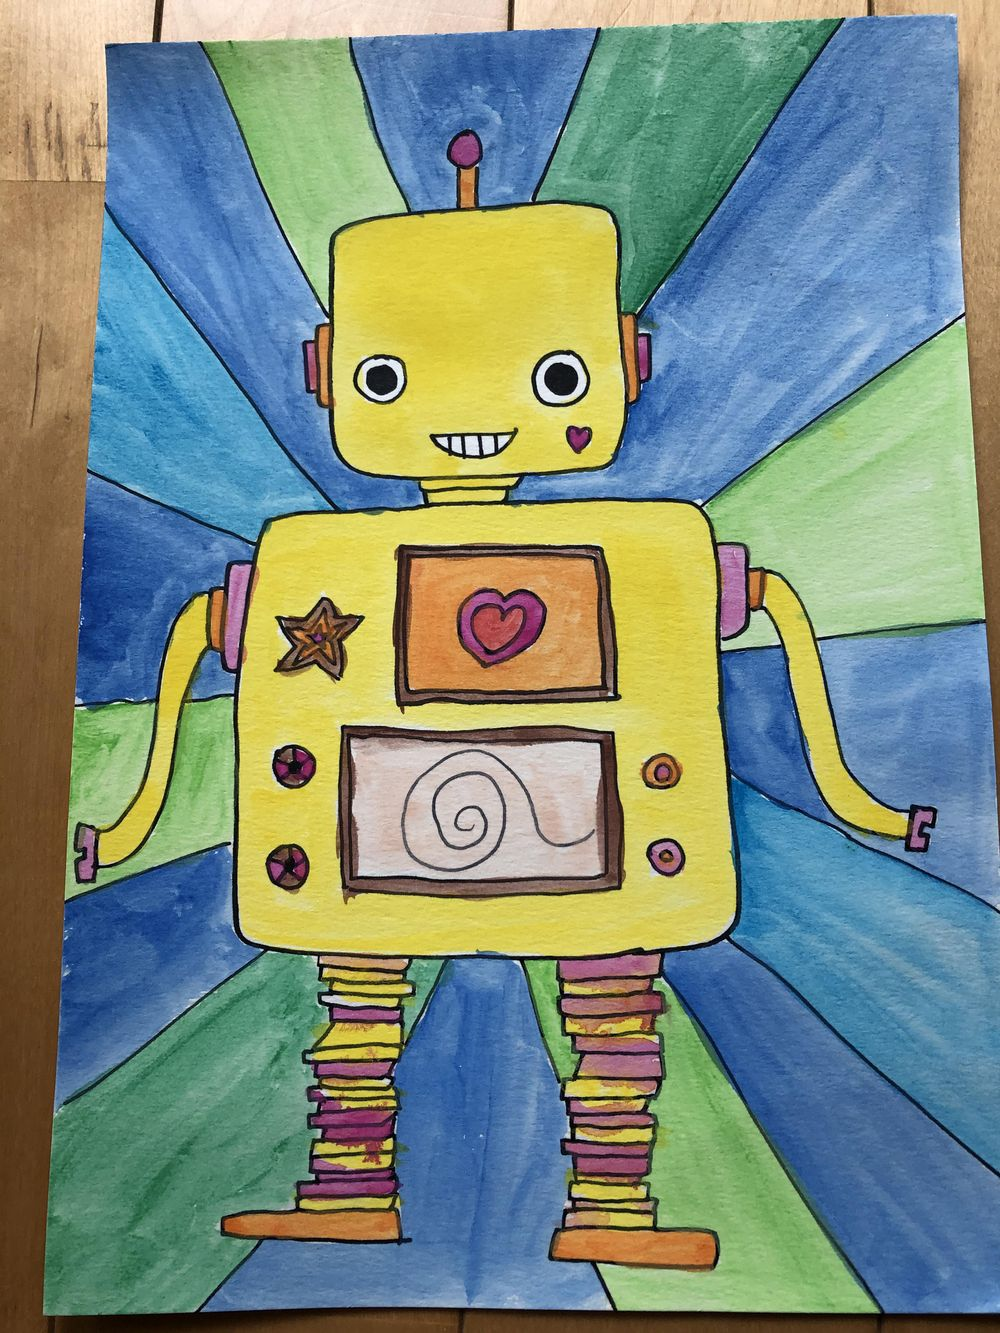 Robot with a fish tank by Lenny - image 2 - student project